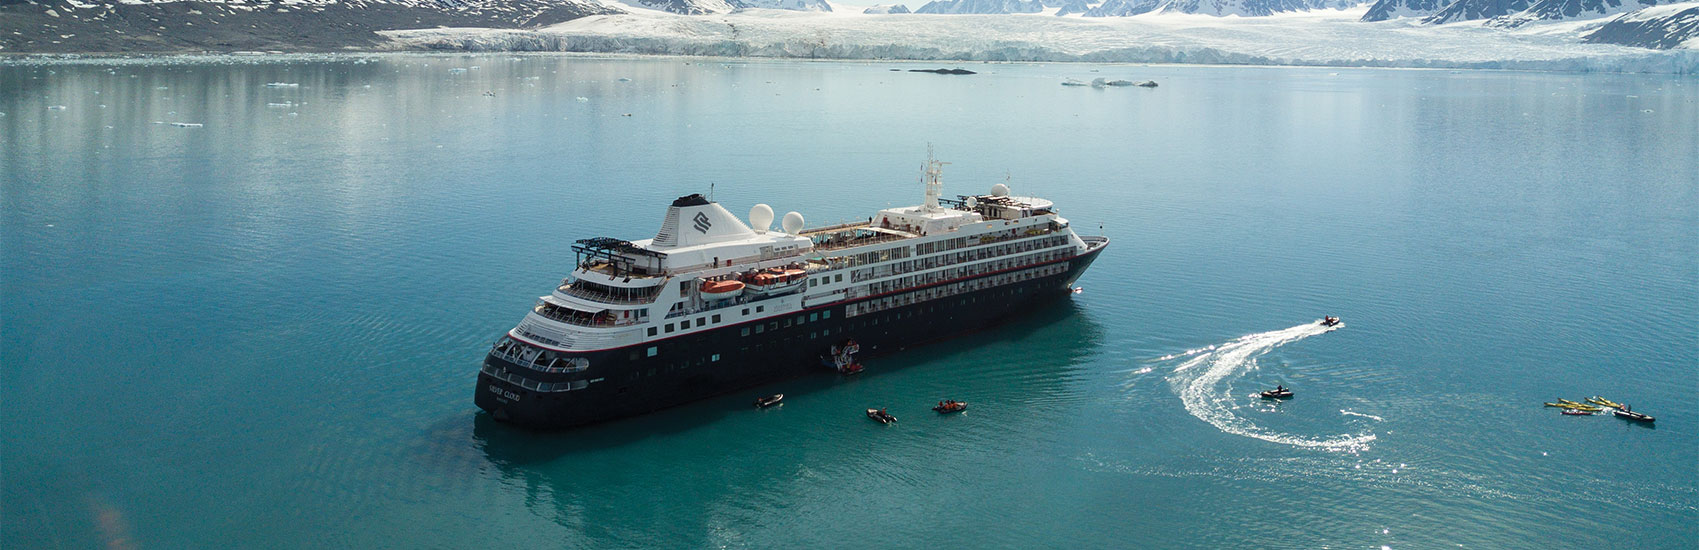 Expedition All-Inclusive Offer with Silversea Cruises 0